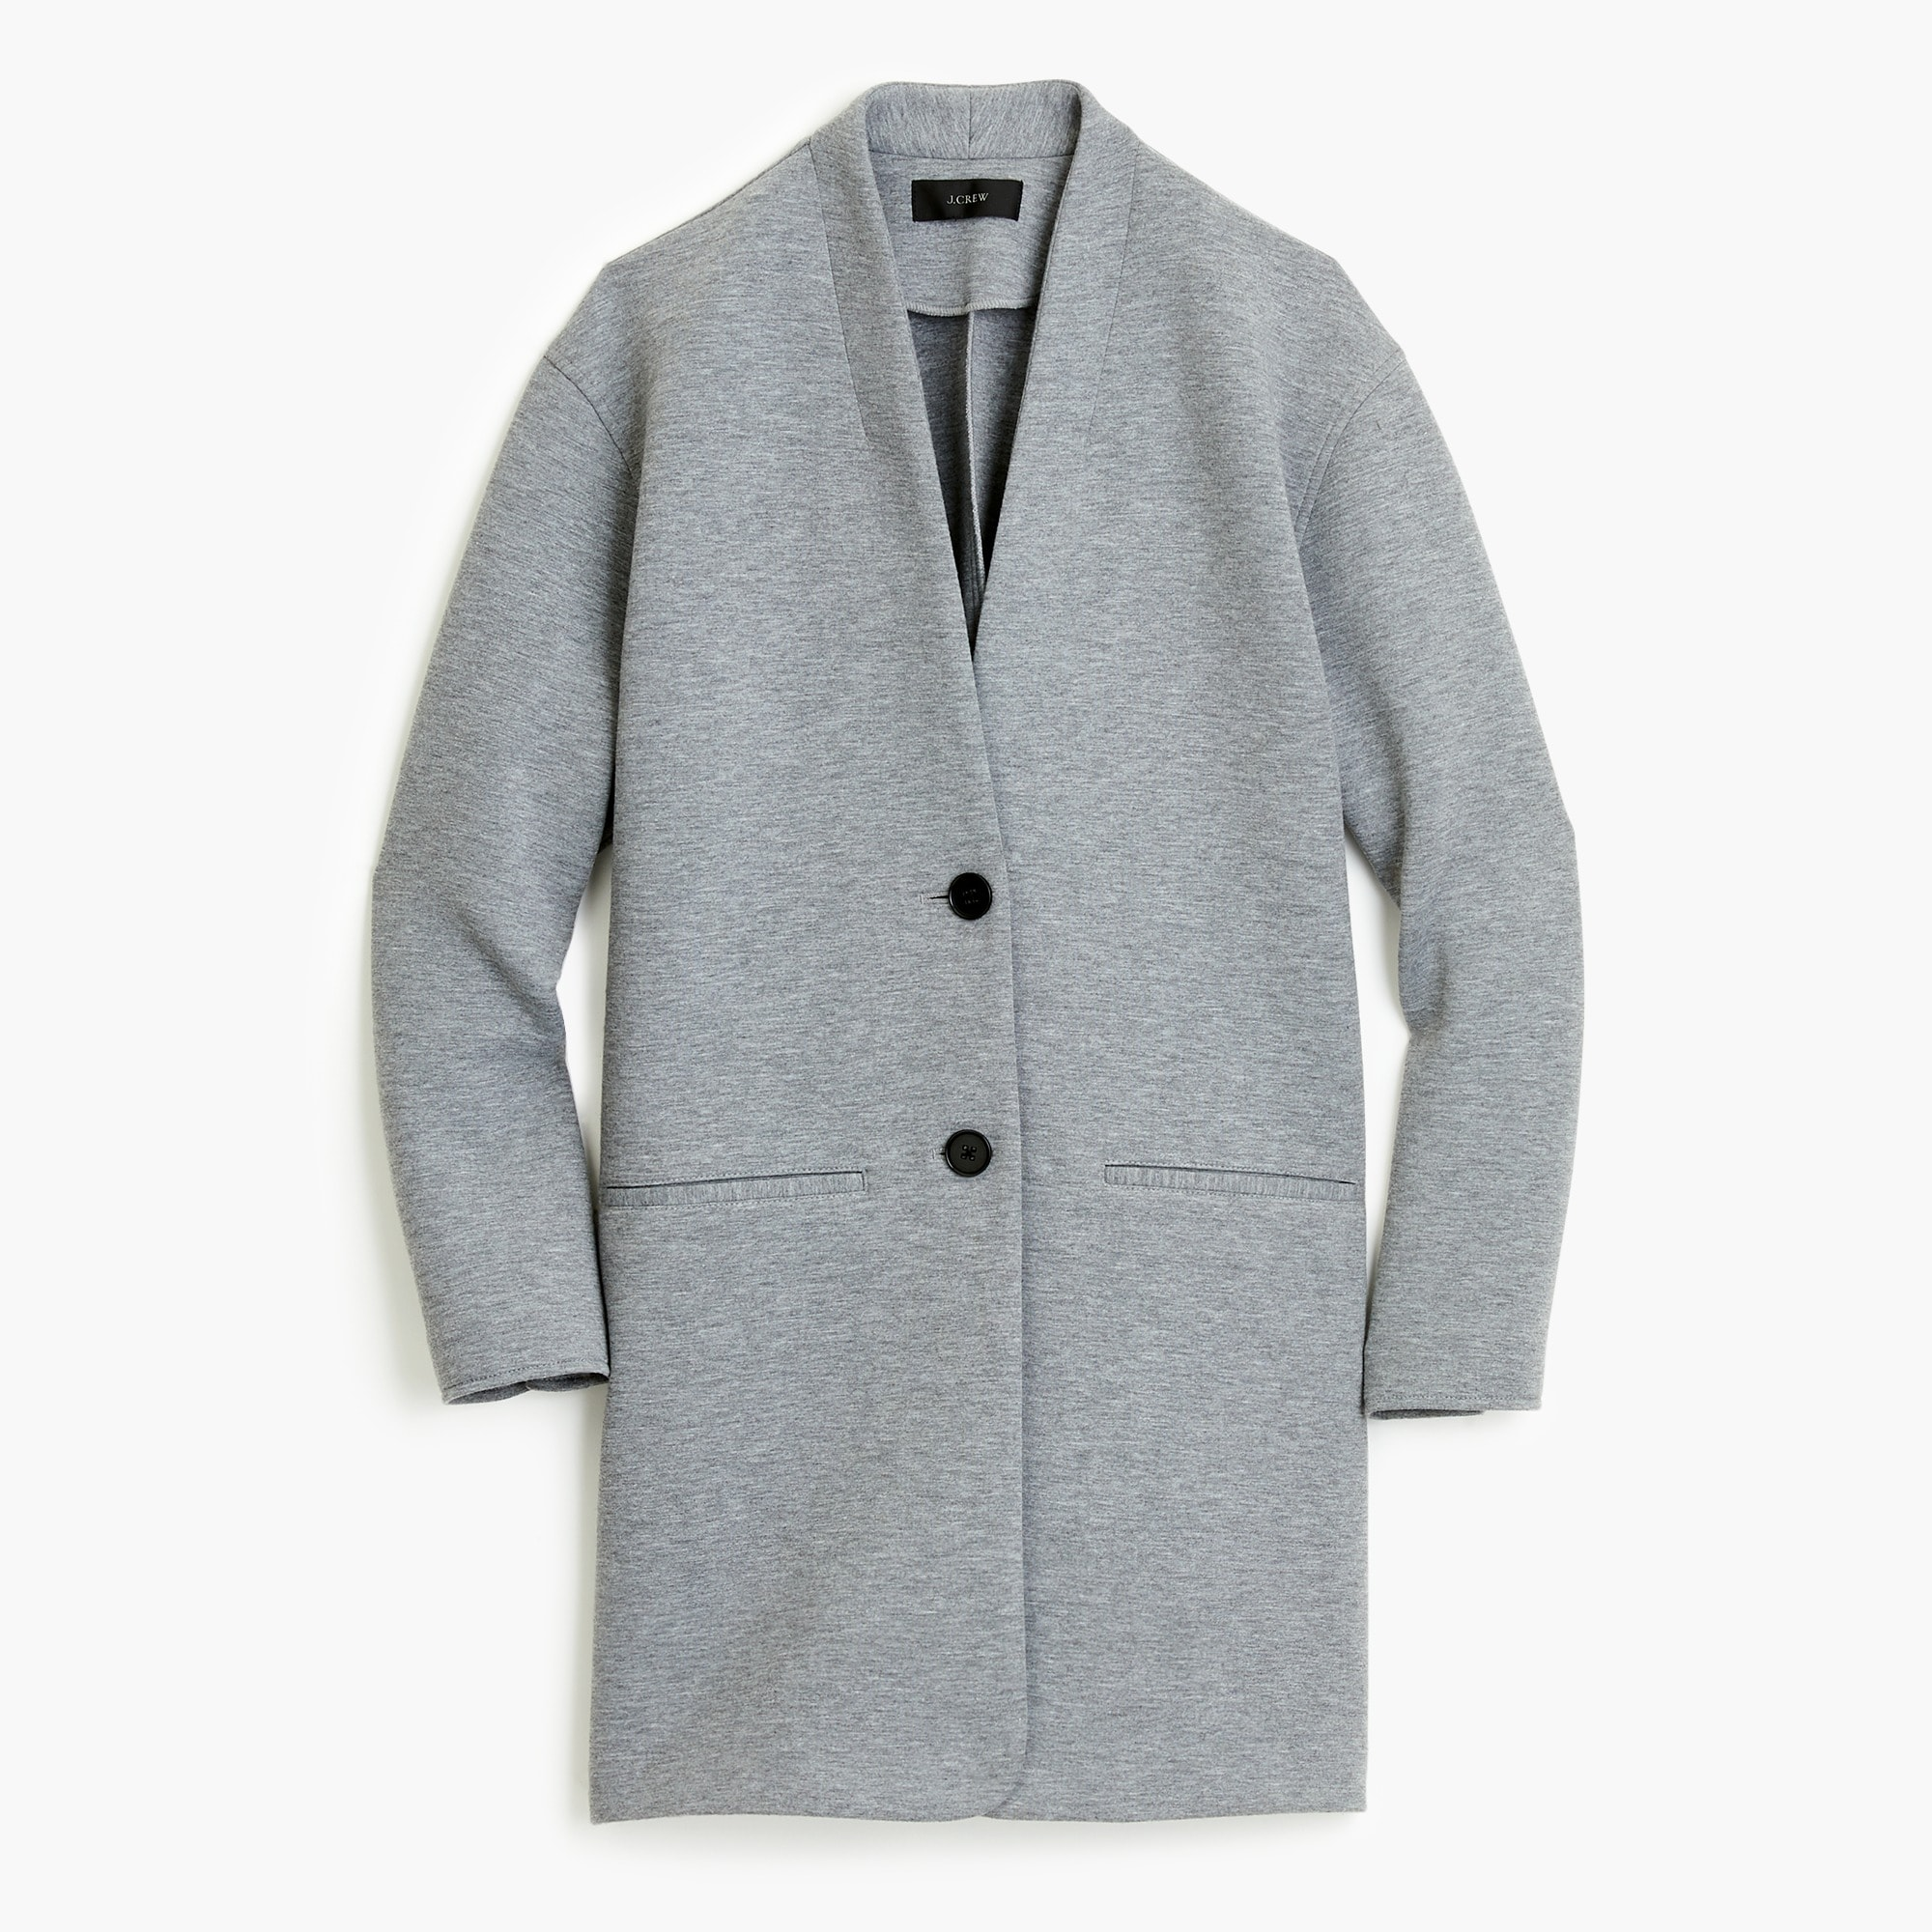 Image 2 for Drapey heather grey jacket